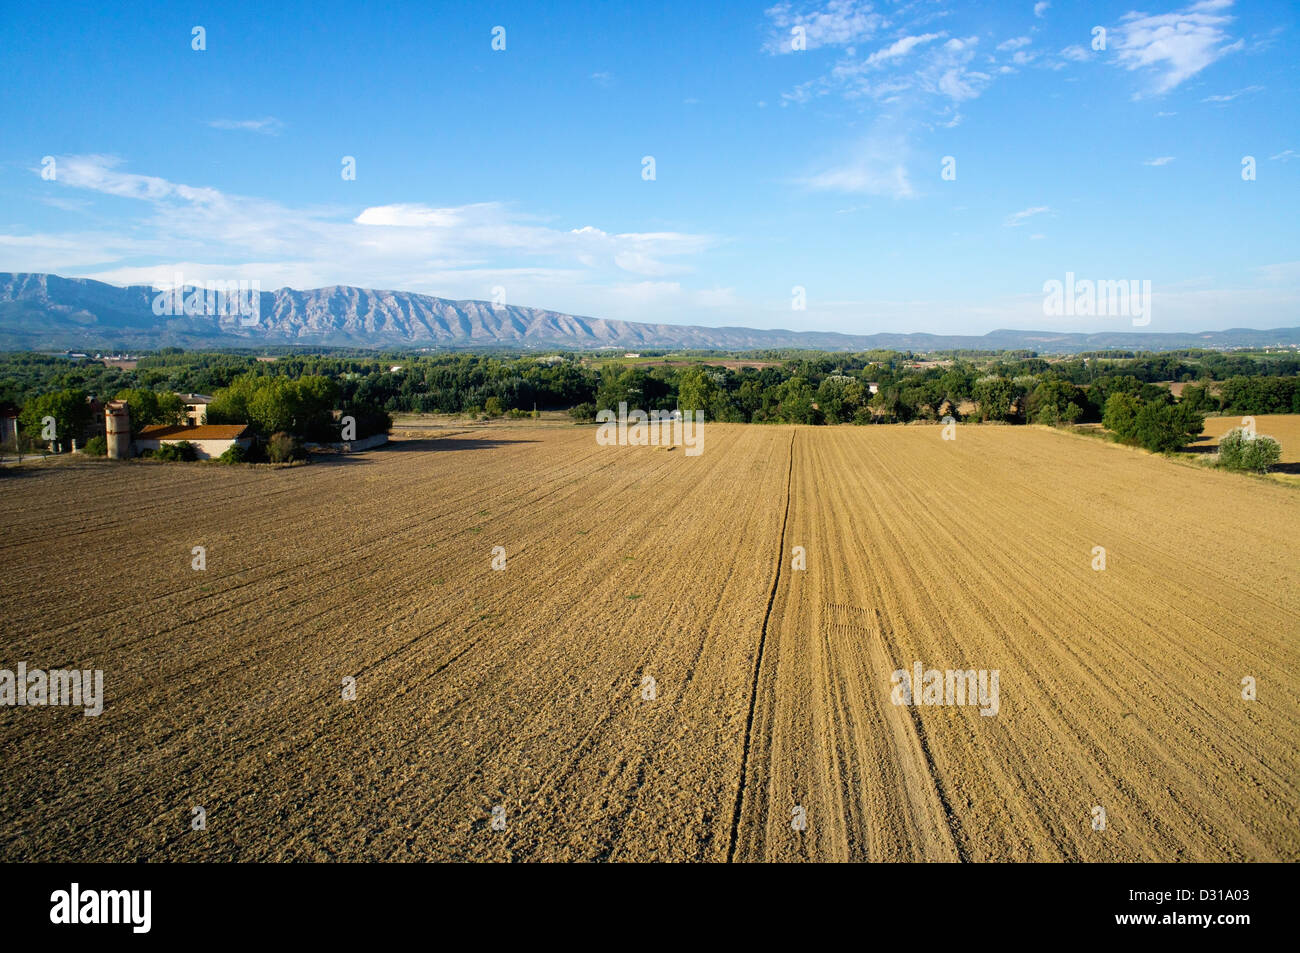 Trets, Bouches-du-Rhône, France - Plowed fields in autumn with Sainte-Victoire mountains in the background - Stock Image